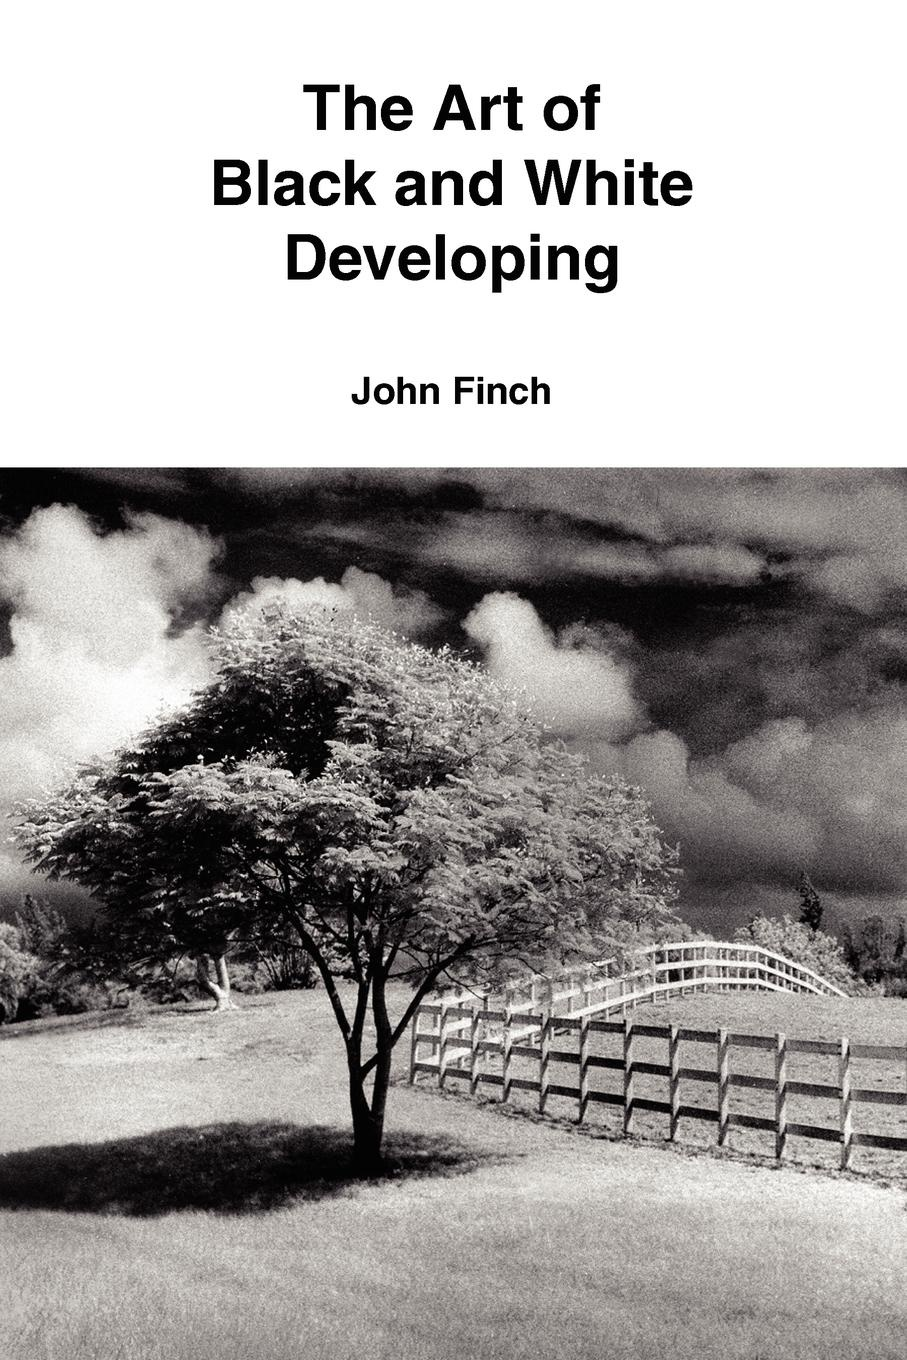 John Finch. The Art of Black and White Developing